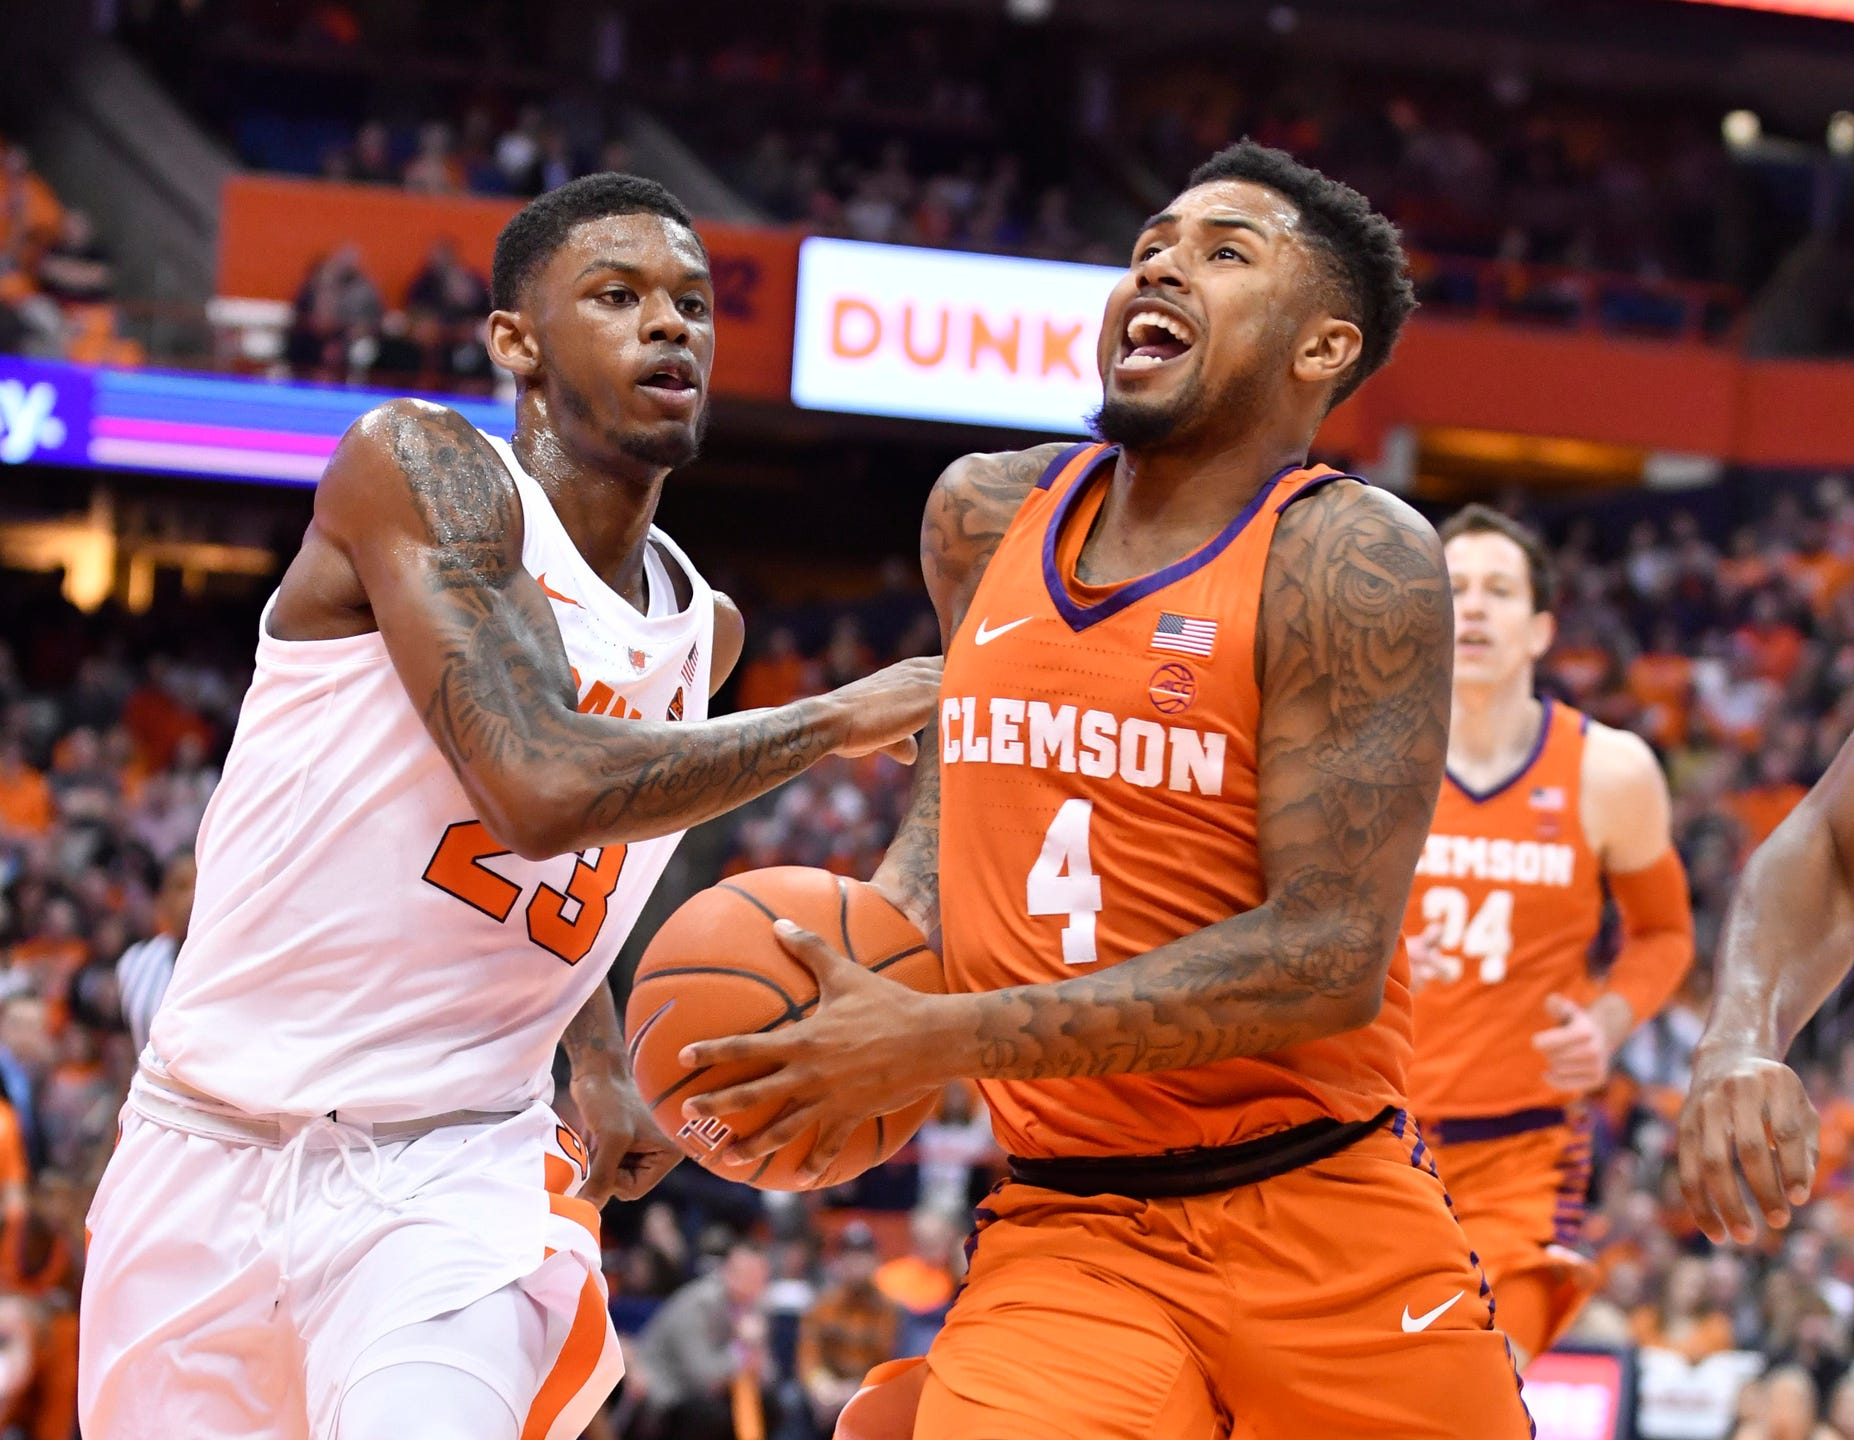 brand new 8cc04 3dc9c Syracuse Orange tops Clemson in the Carrier Dome